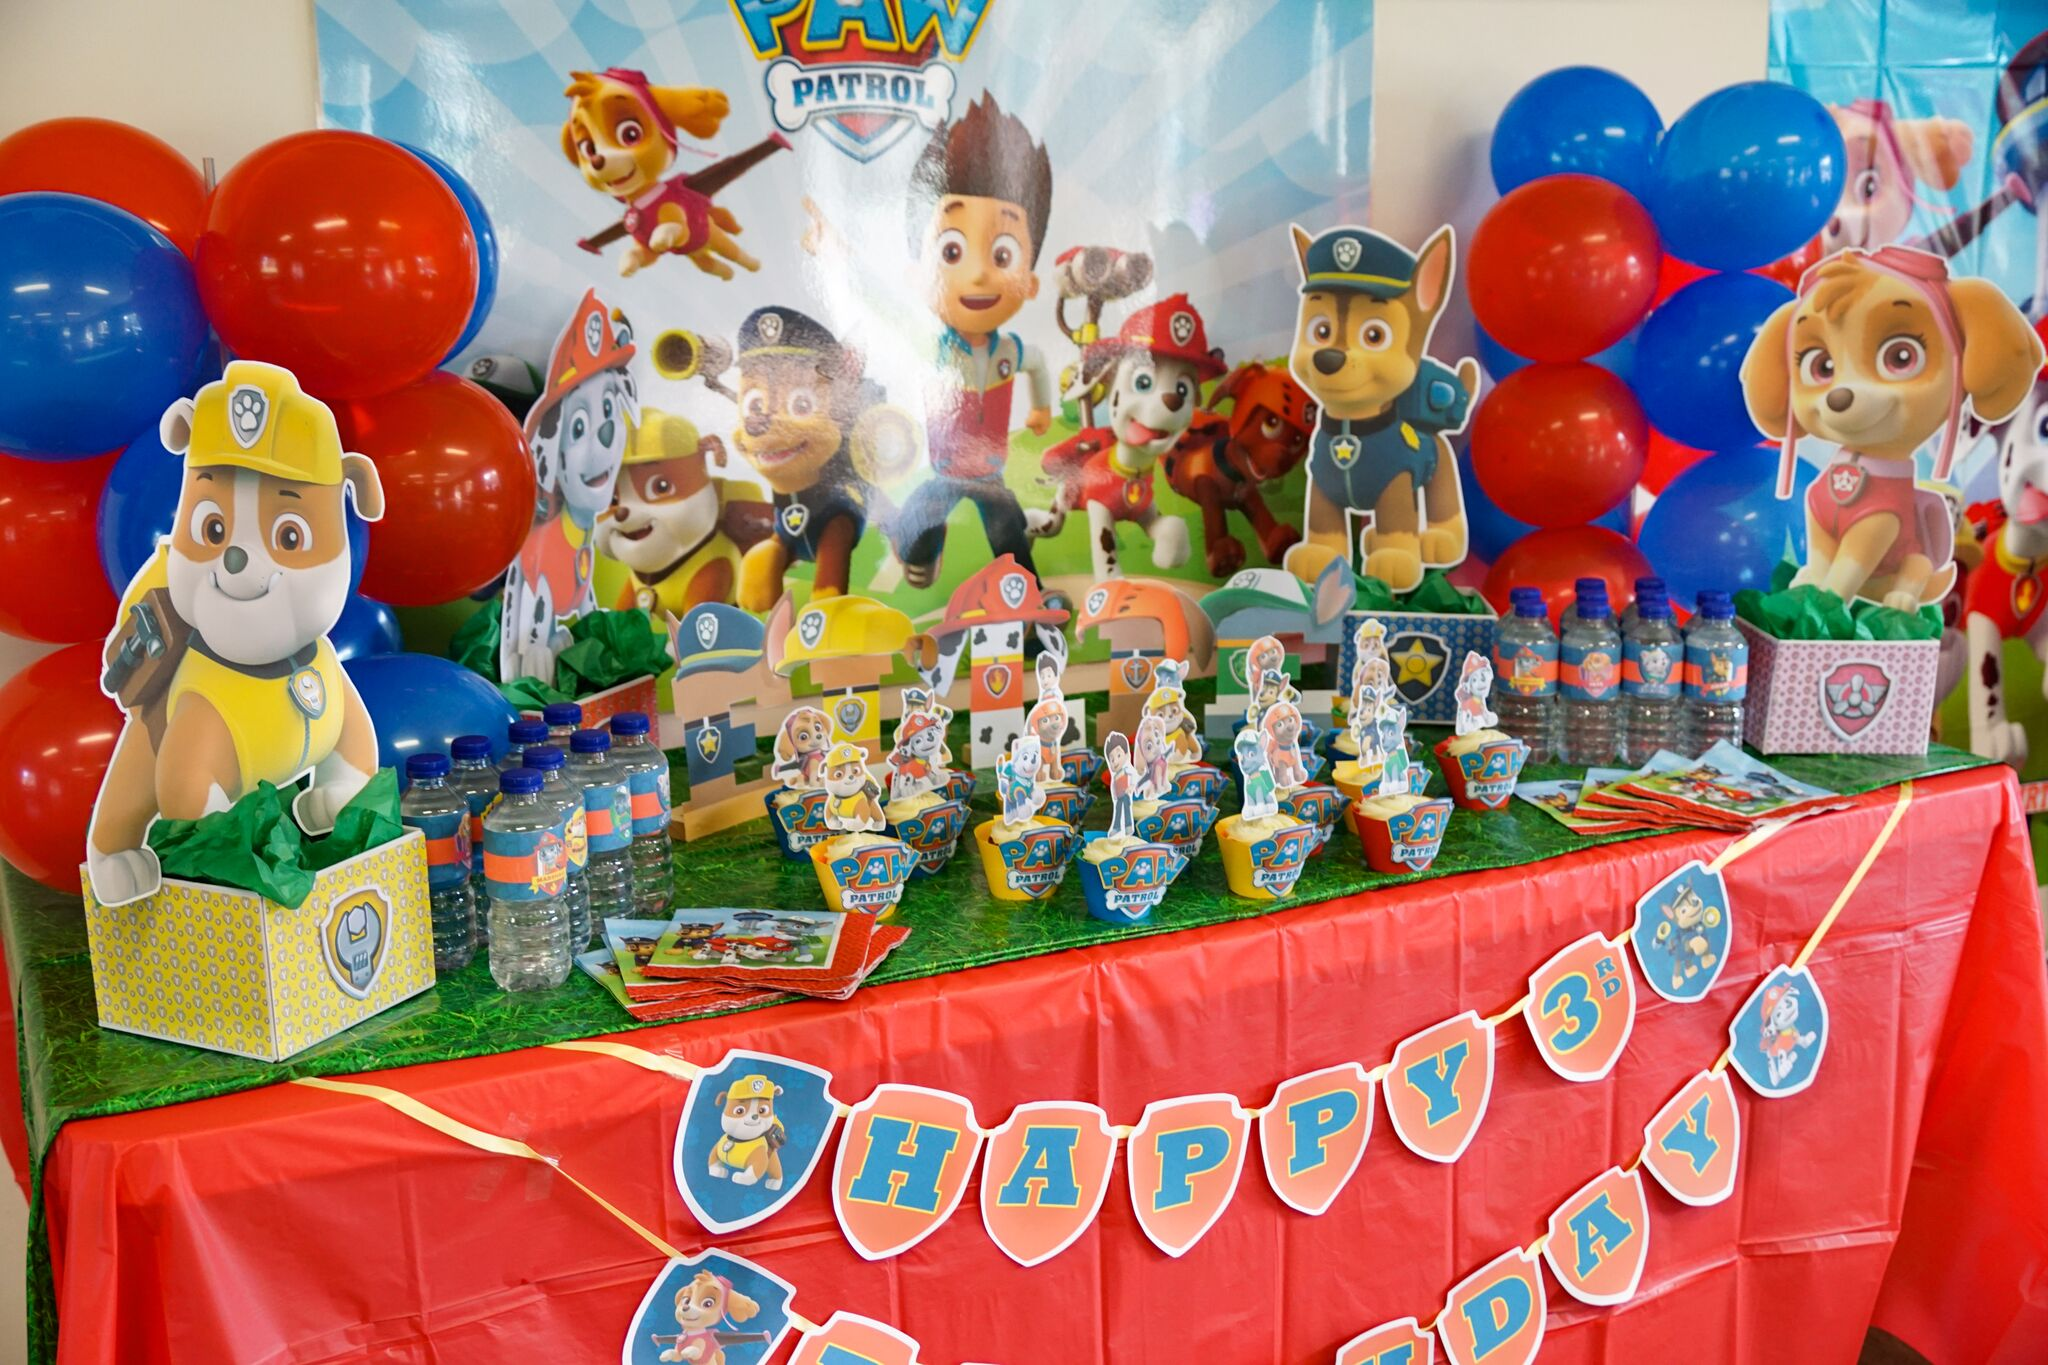 Paw Patrol Happy Birthday Banner | Learn how to make with ...